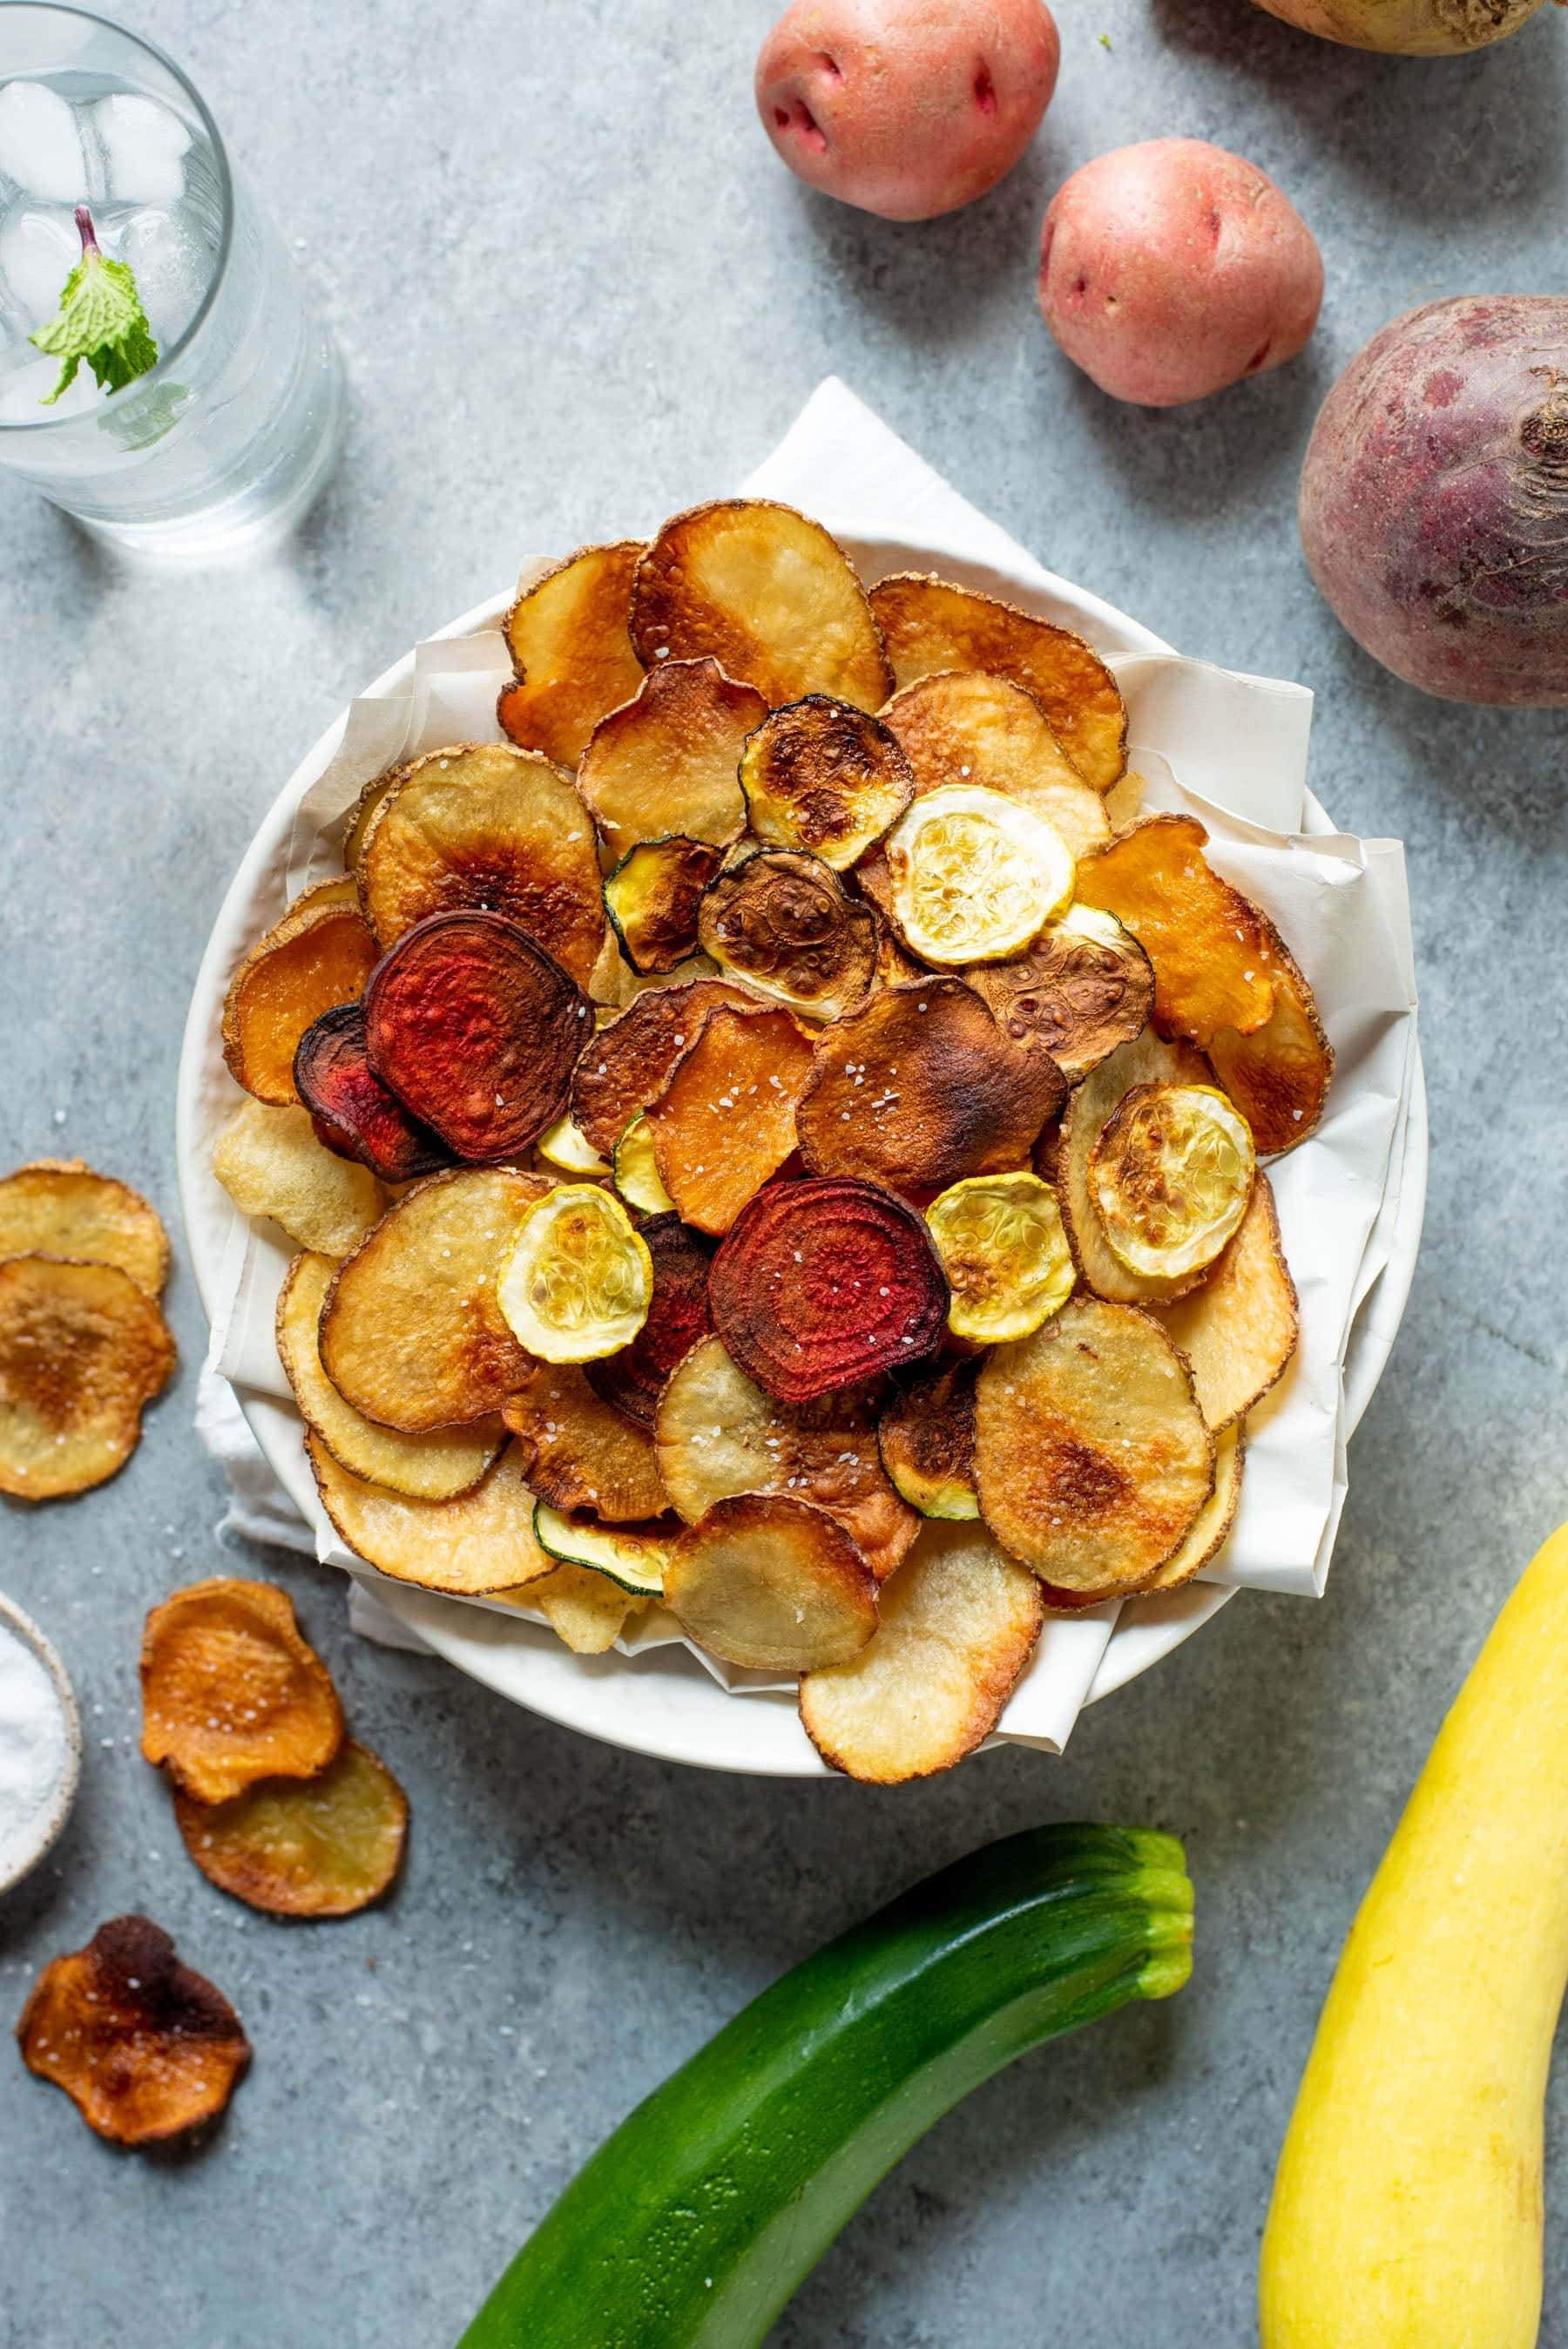 Overhead shot of Baked Vegetable Chips in a white bowl, surrounded by whole veggies